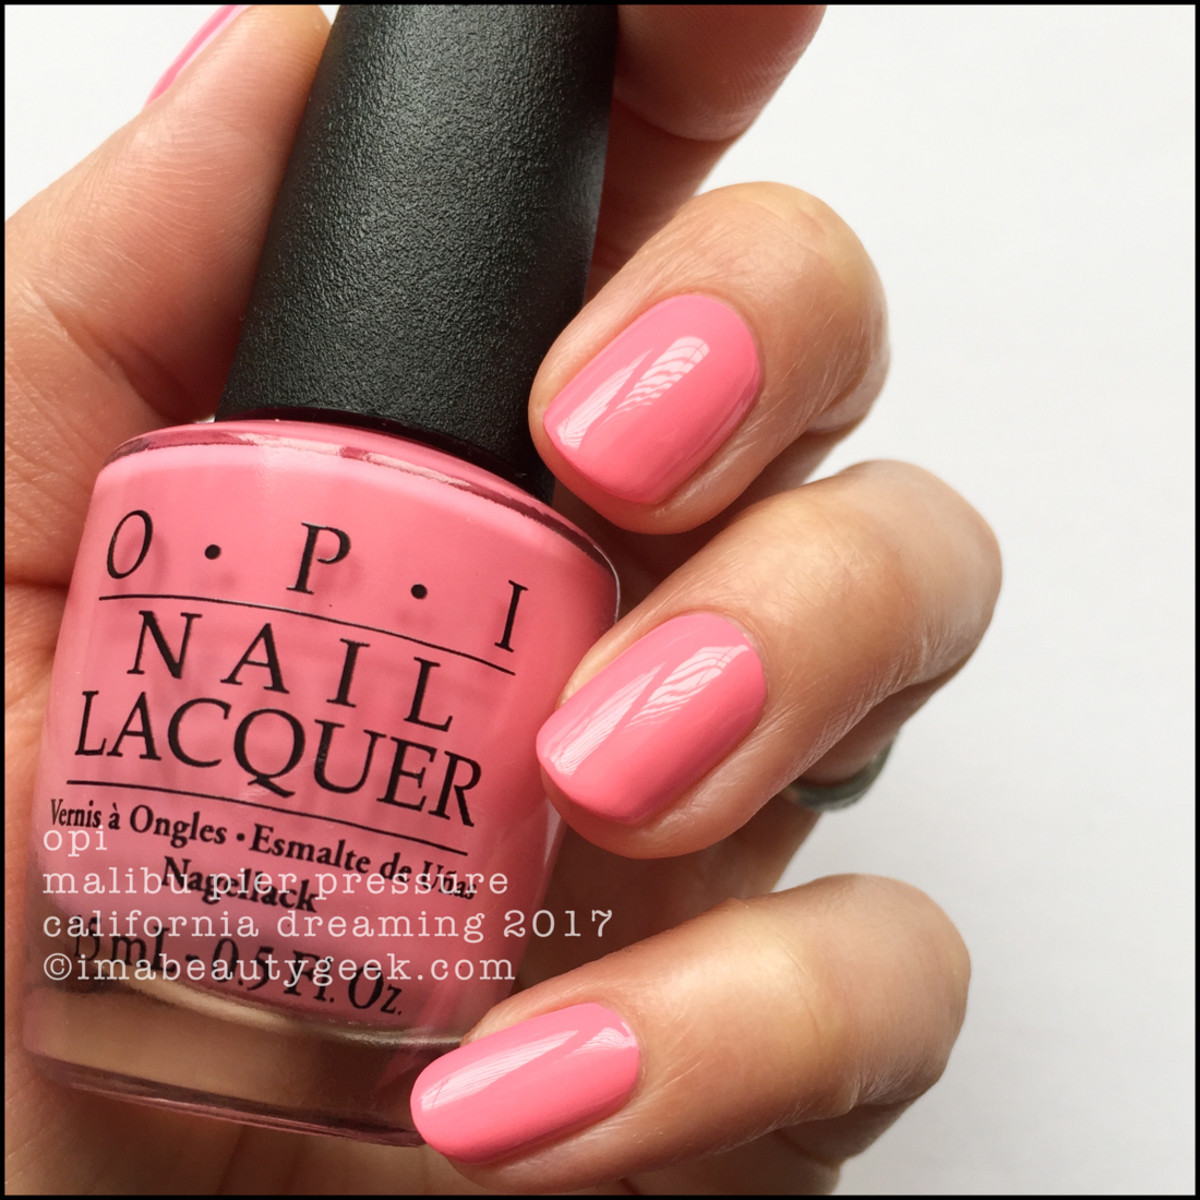 OPI Malibu Pier Pressure _ OPI California Dreaming Collection Swatches 2017